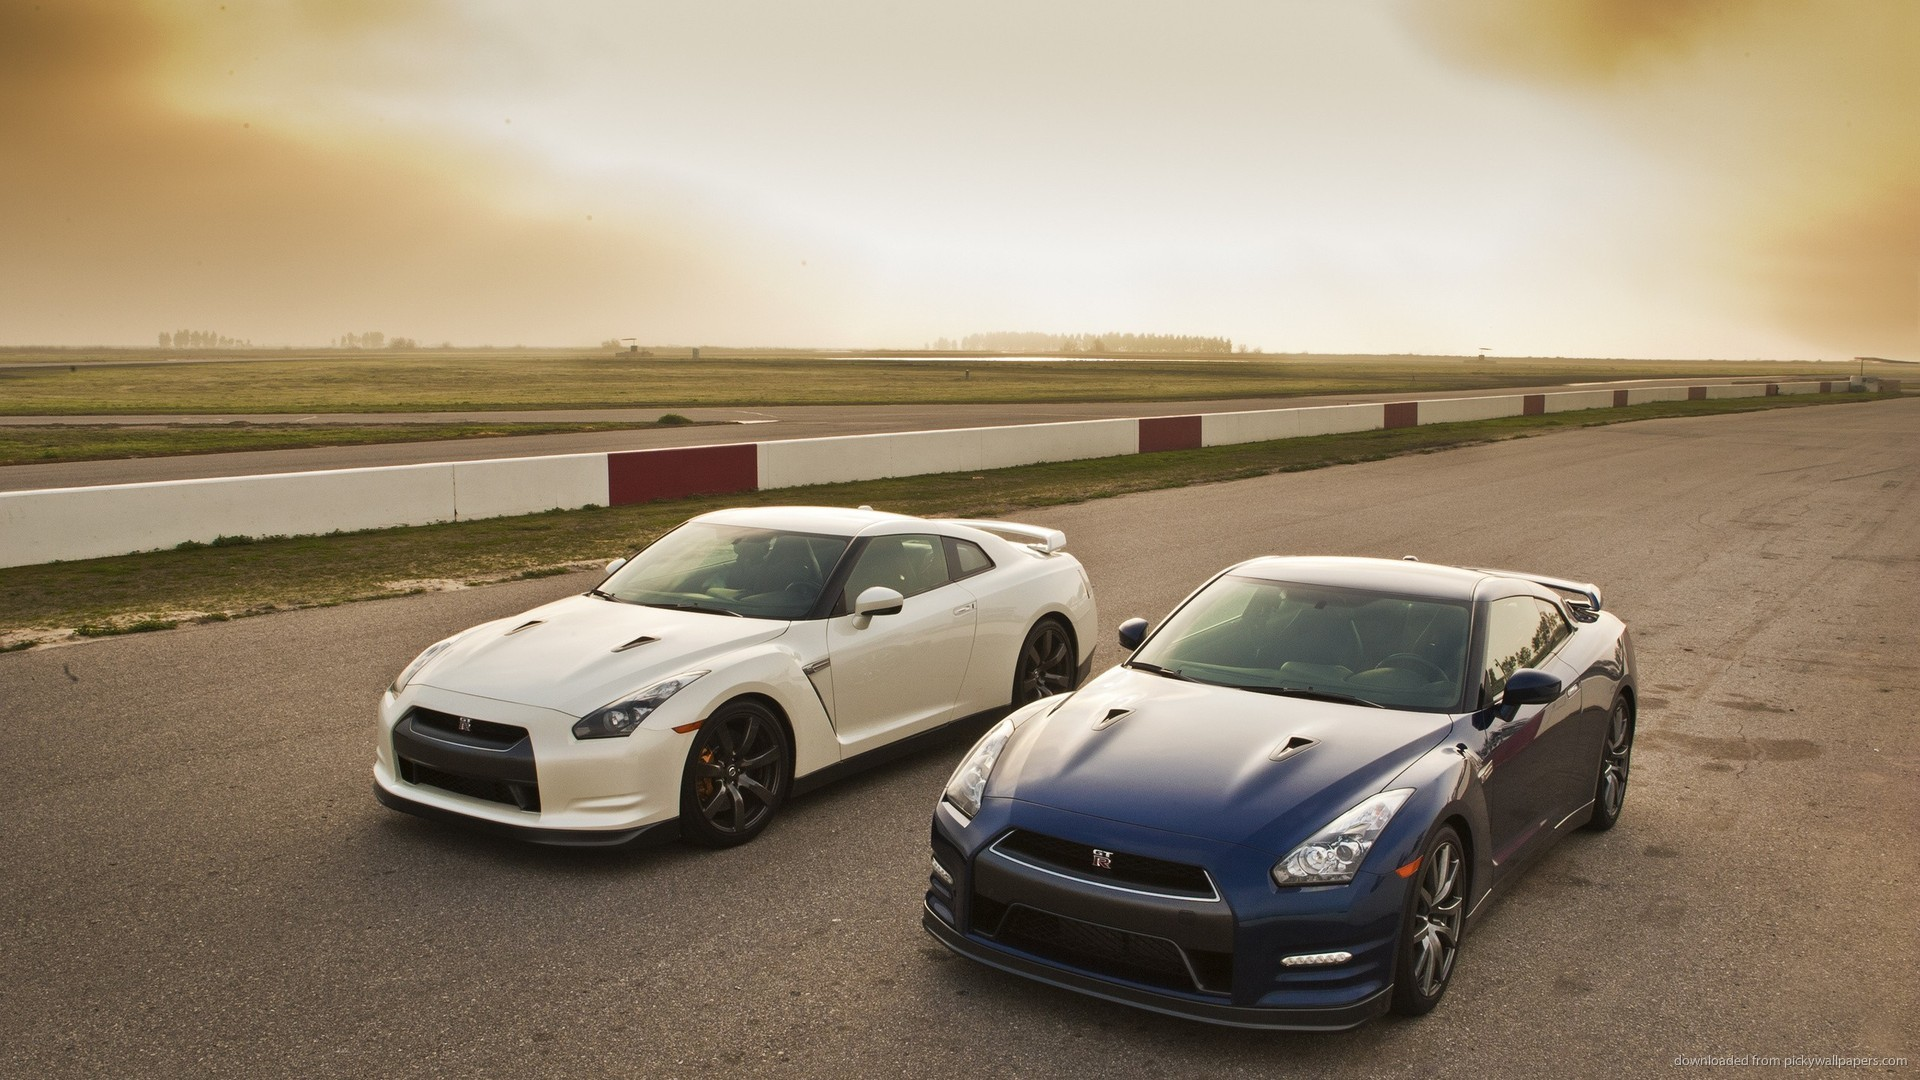 Two Nissan GT-R 2013 for 1920×1080